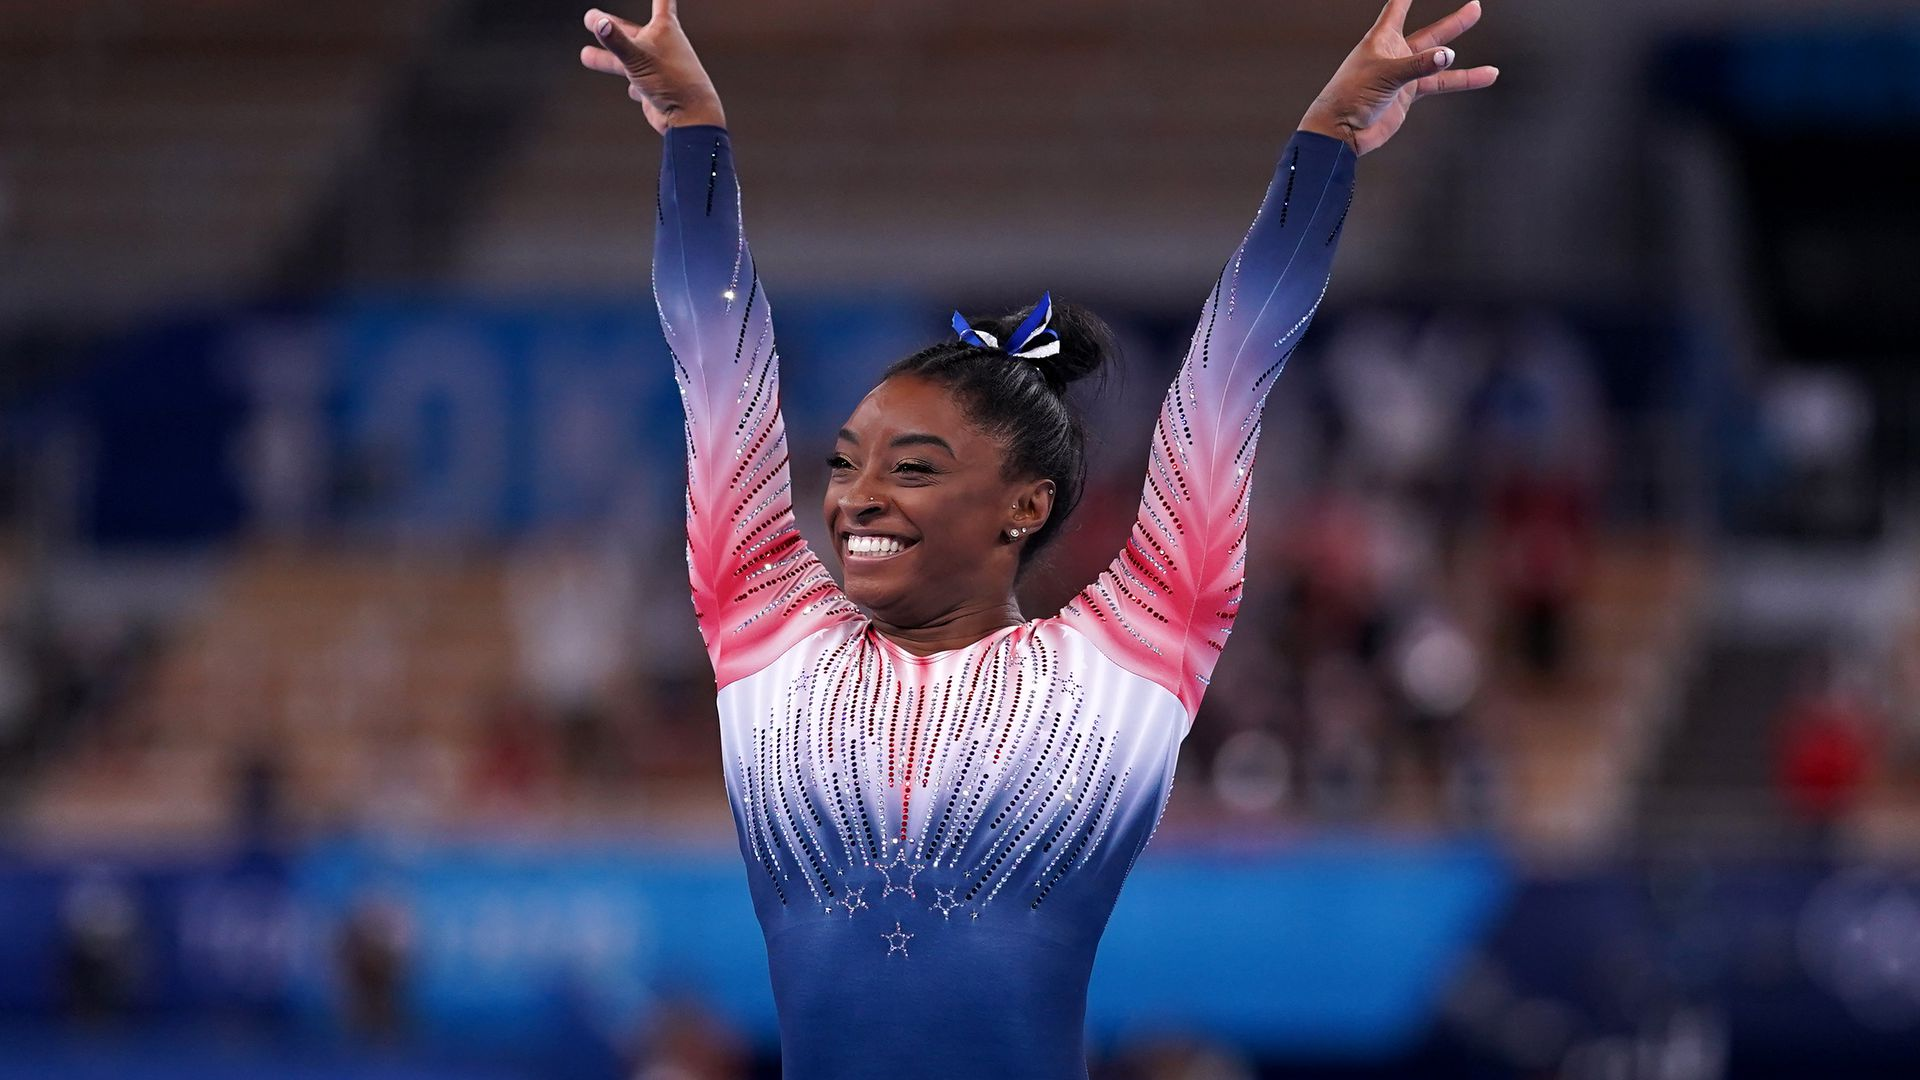 Olympics: The medals Simone Biles won in Tokyo - Axios